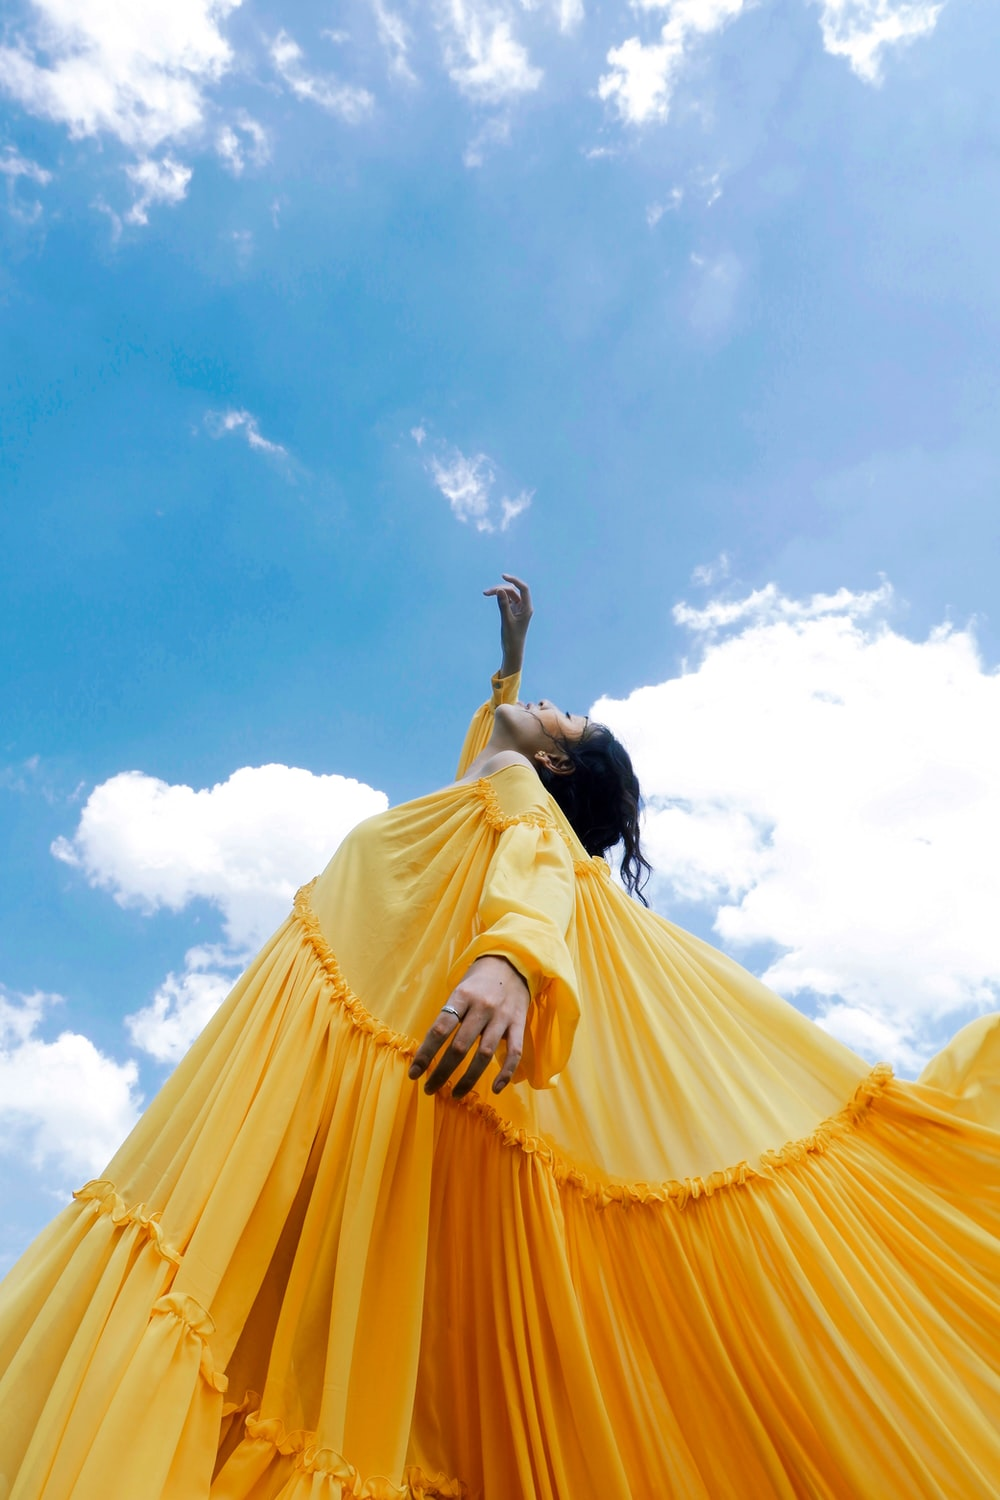 woman wearing yellow long-sleeved dress under white clouds and blue sky during daytime